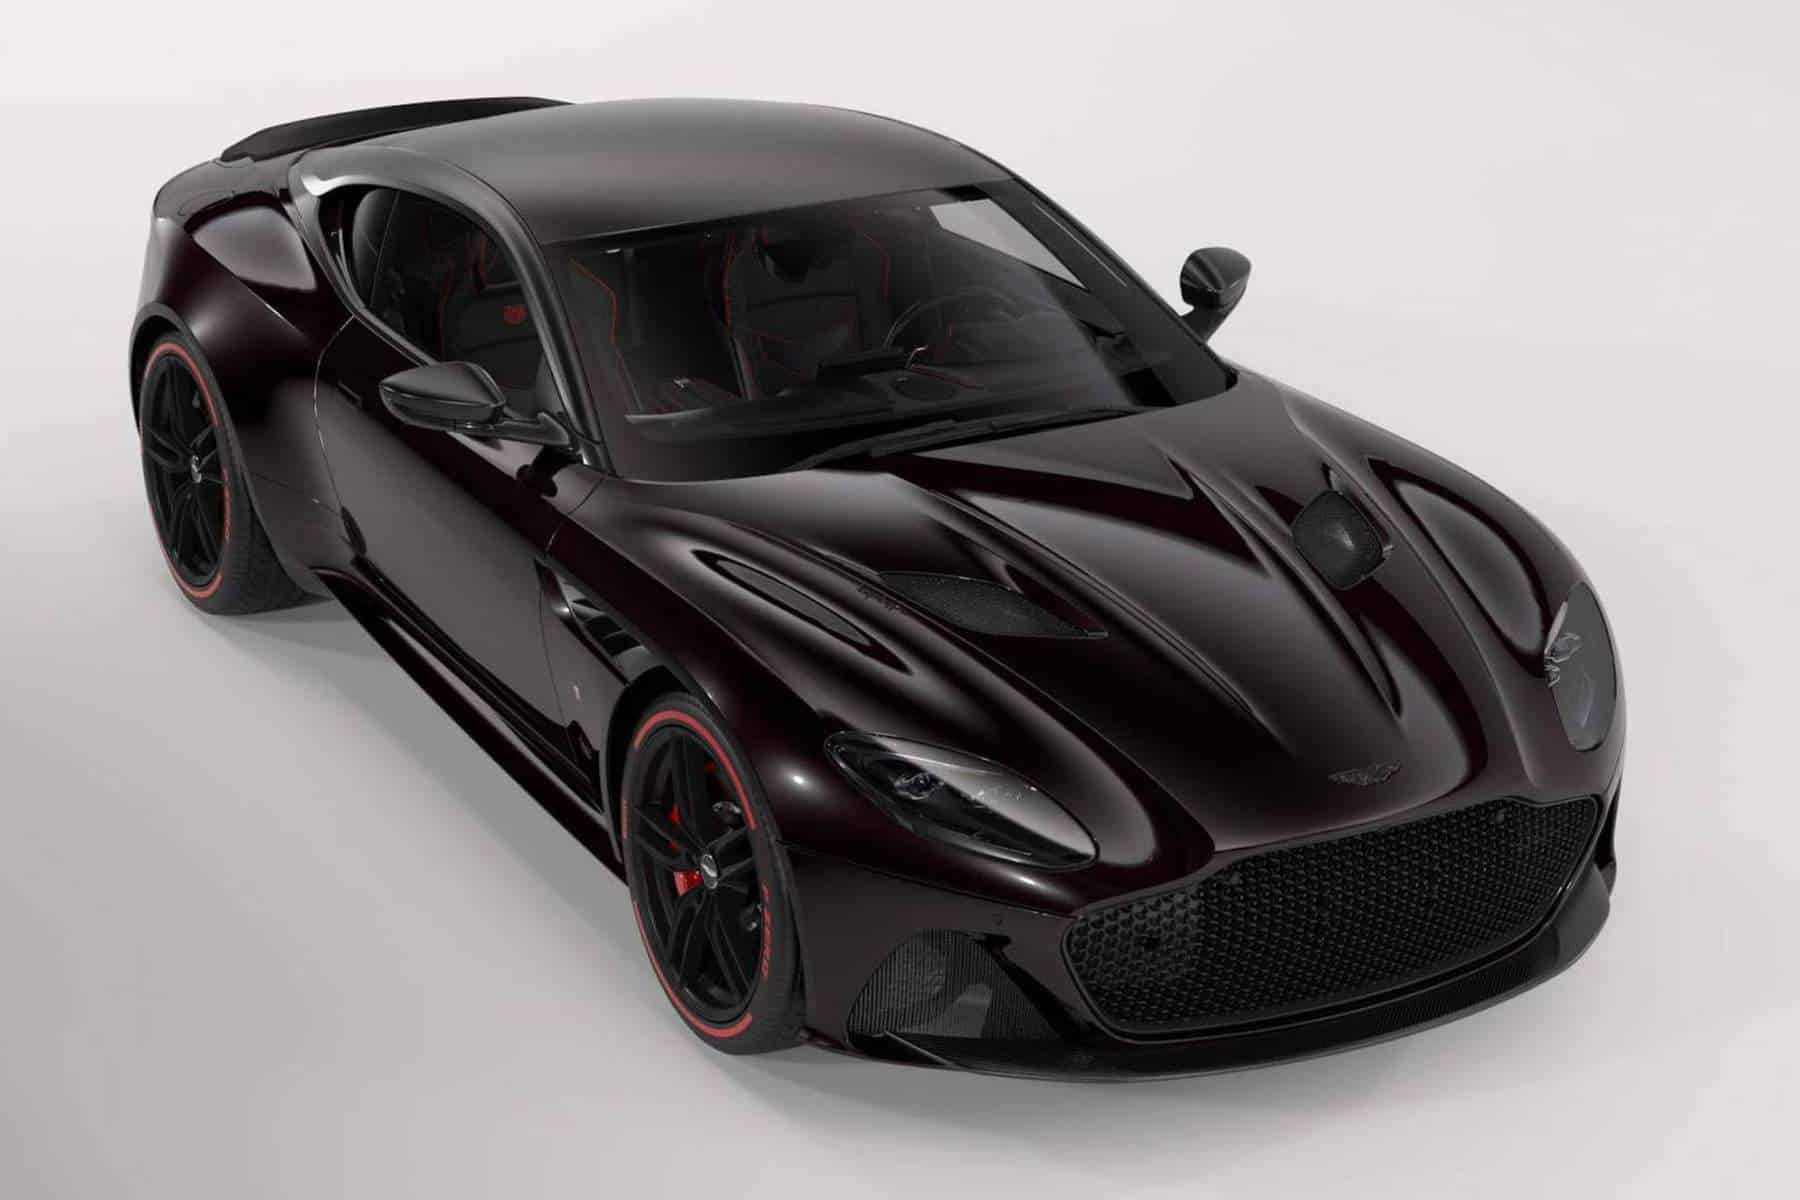 aston-martin-dbs-superleggera-tag-heuer-edition-5